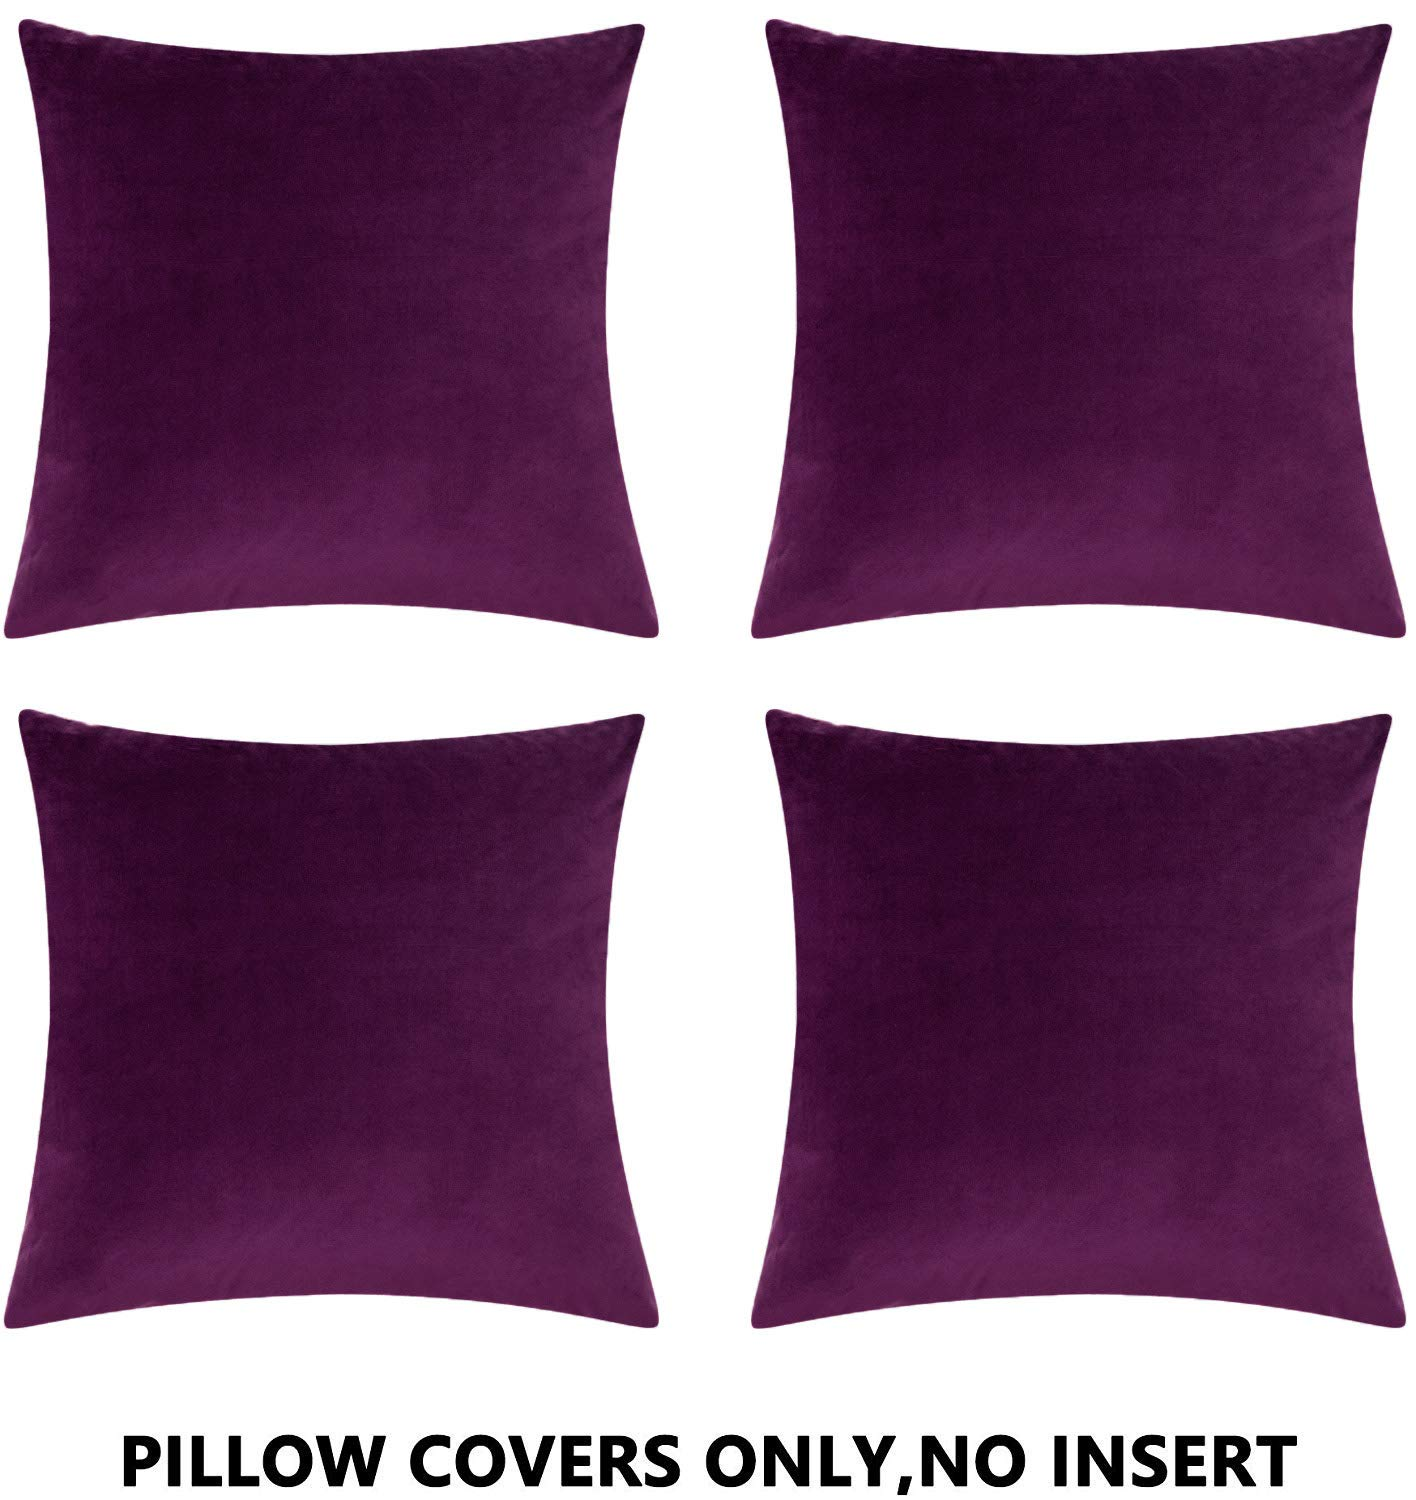 COMFORTLAND 20 x 20 Decorative Pillow Covers Pack of 4 Solid Soft Velvet Square Throw Pillow Cases Set Accent Pillowcases Euro Cushion Covers for Farmhouse Indoor Bedroom Sofa Couch Bed Kids,Eggplant